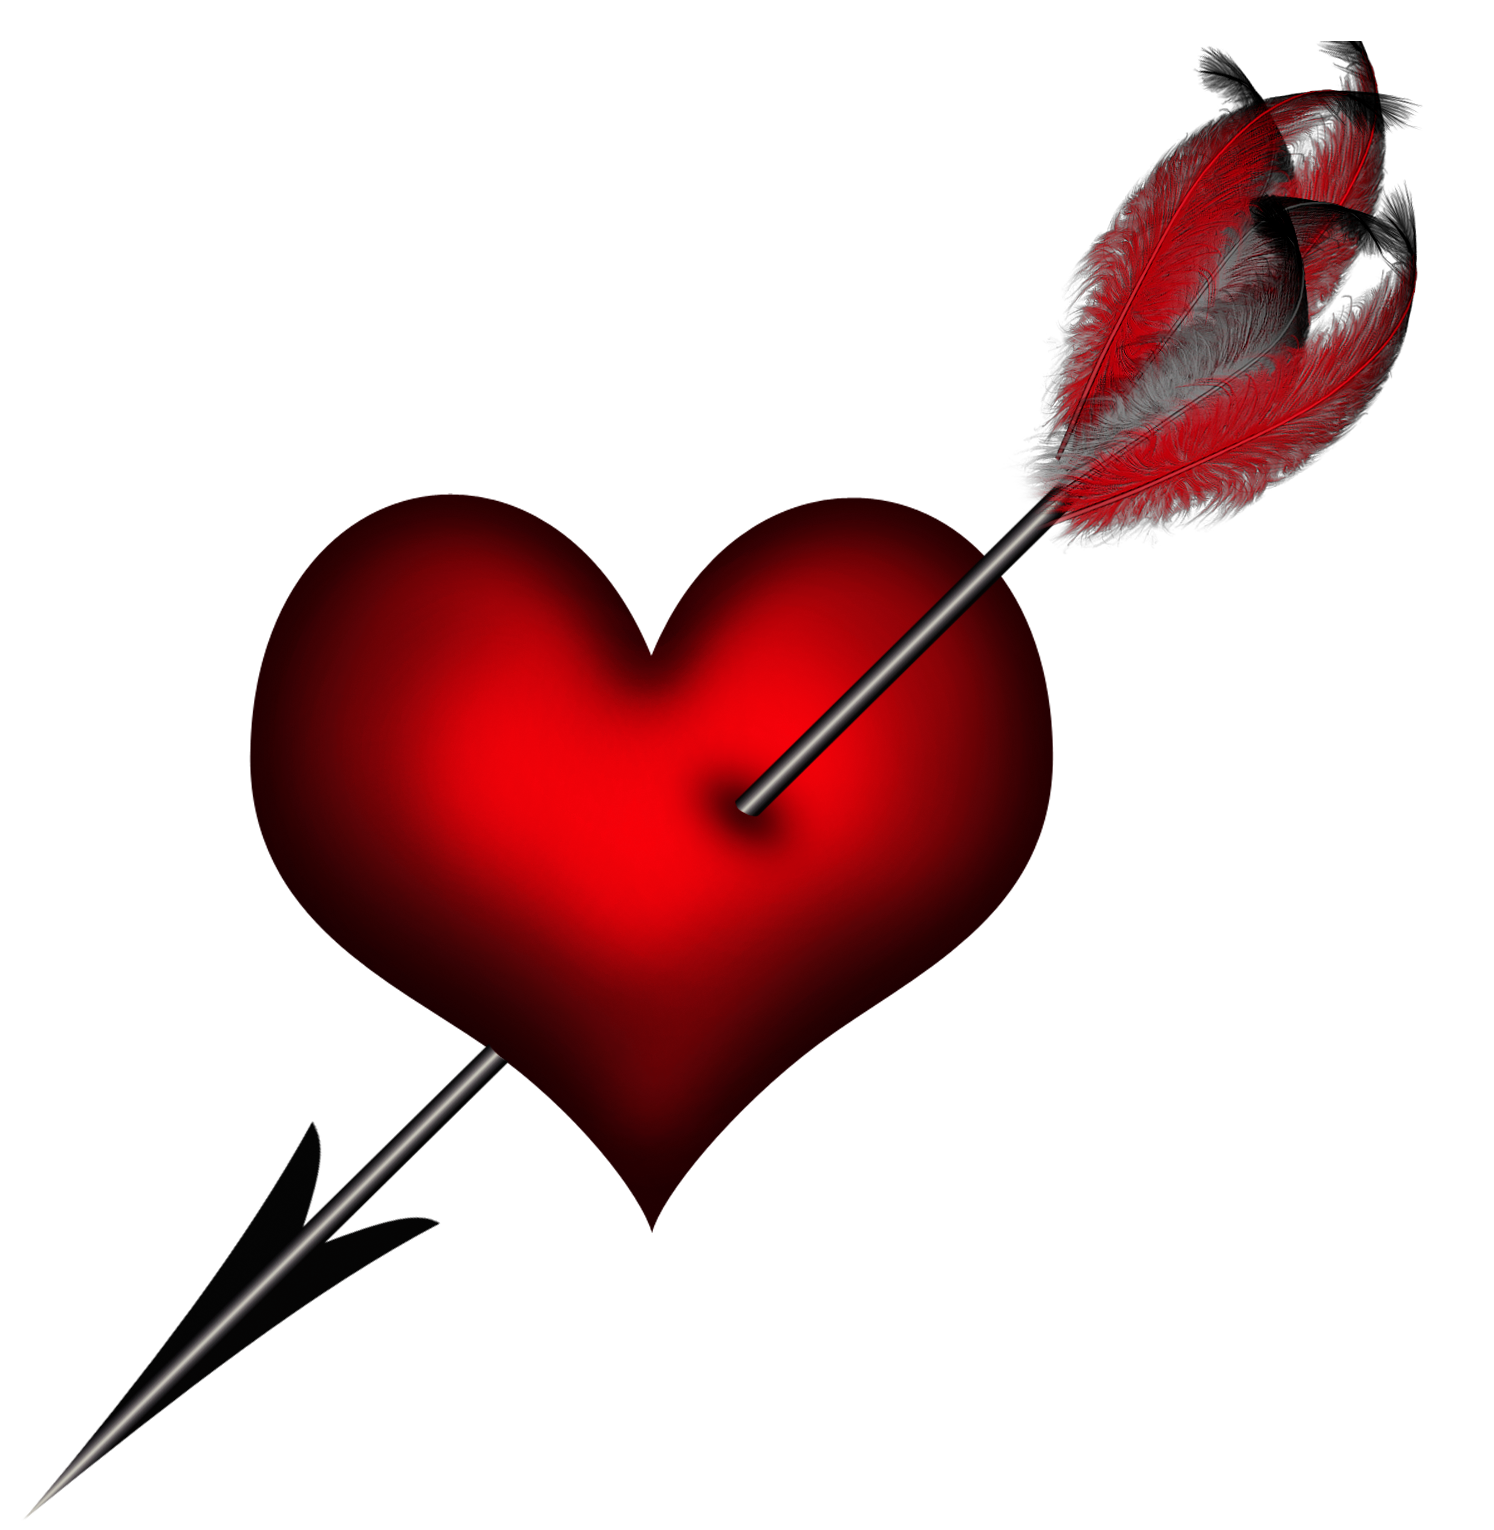 Free clipart heart with arrow graphic library download Transparent_Heart_with_Arrow_Clipart_Picture.png?m=1420531969 graphic library download